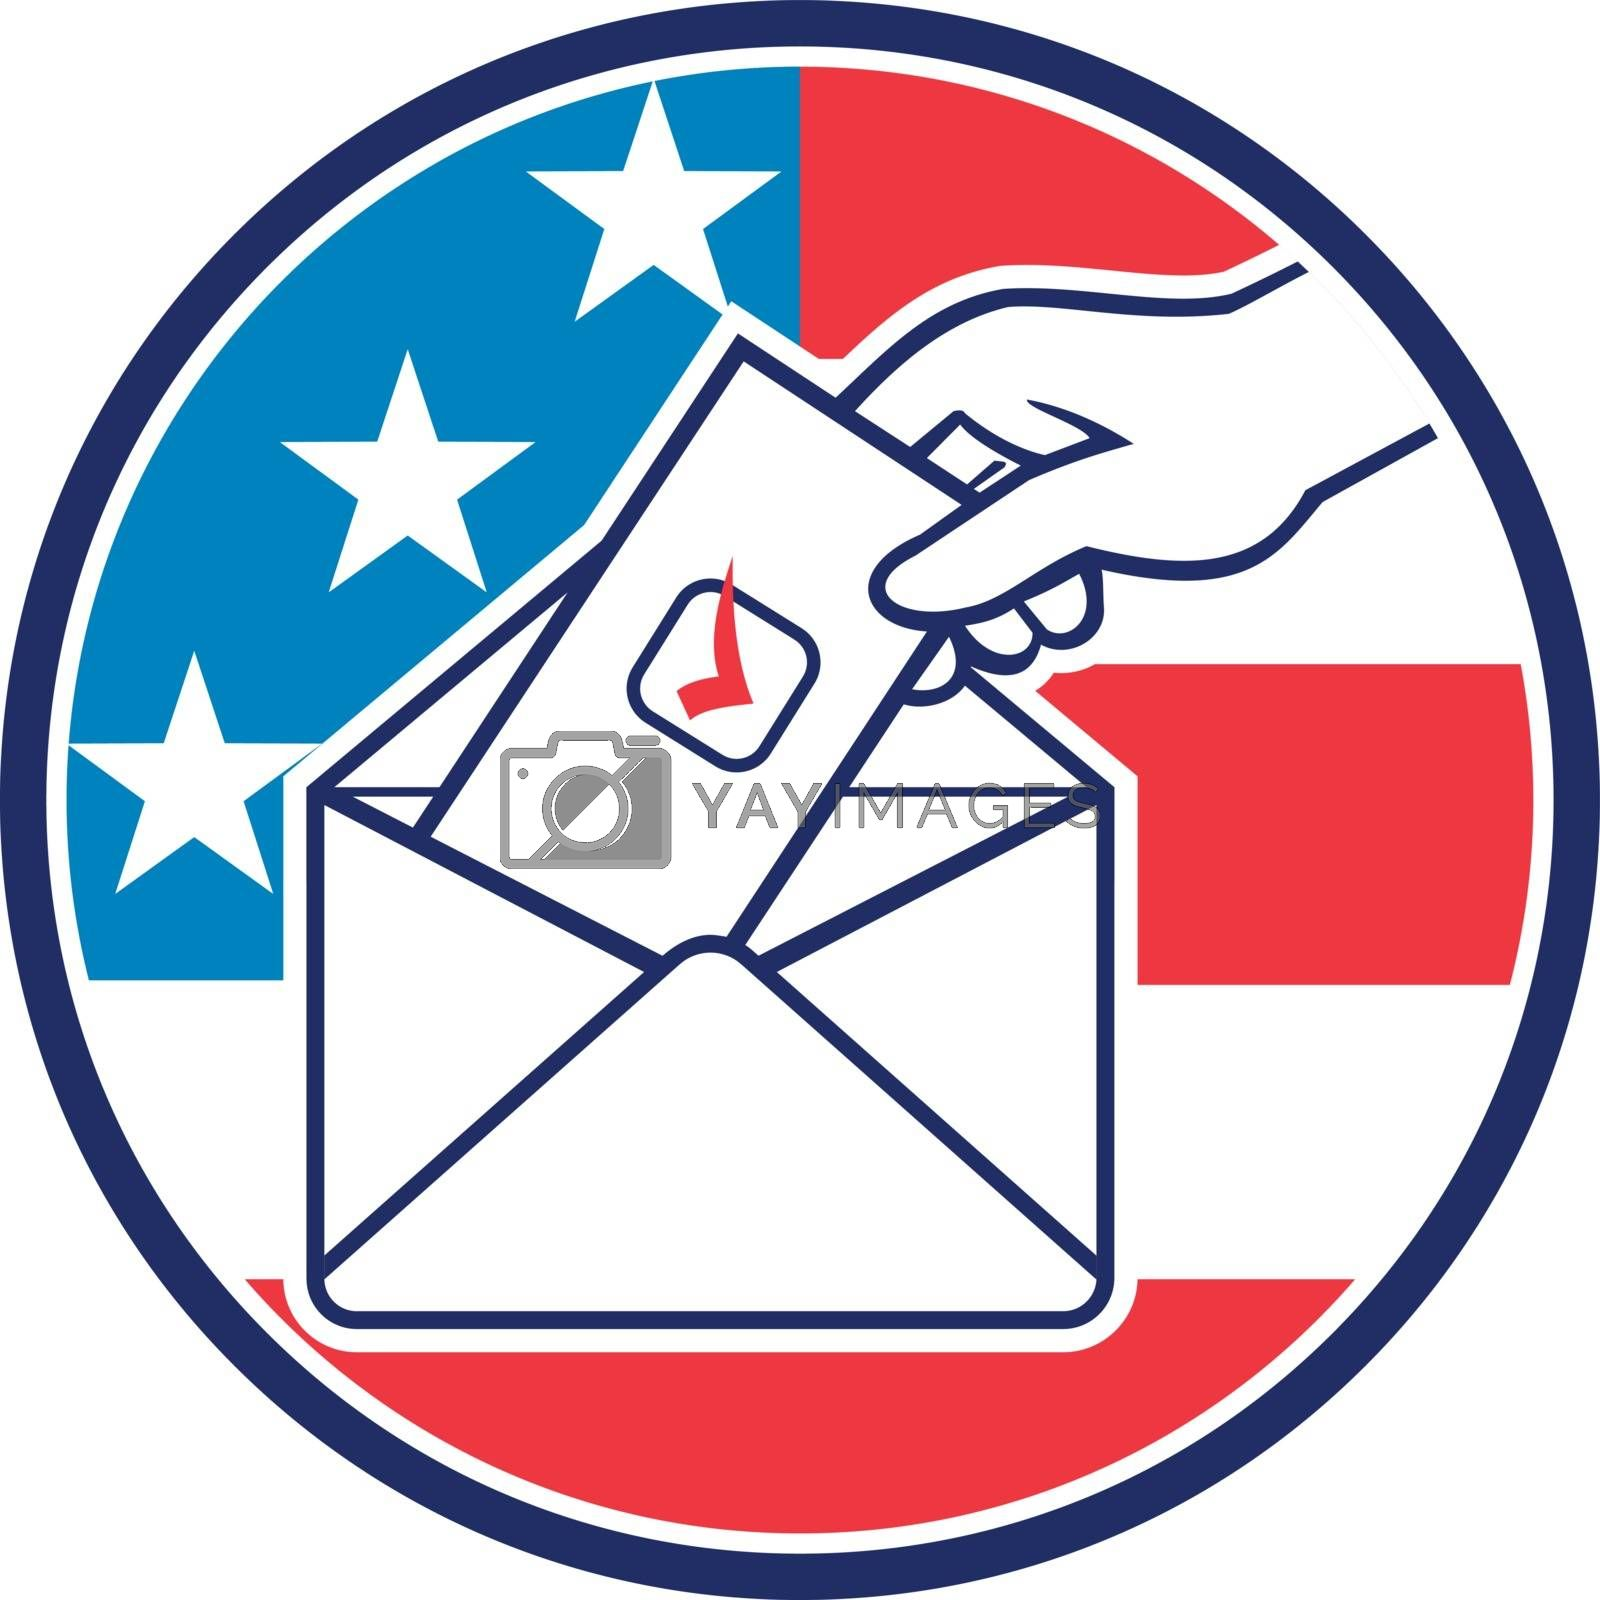 Retro style illustration of a hand of an American voter putting ballot or vote inside postal ballot envelope with USA stars and stripes flag inside circle on isolated background.